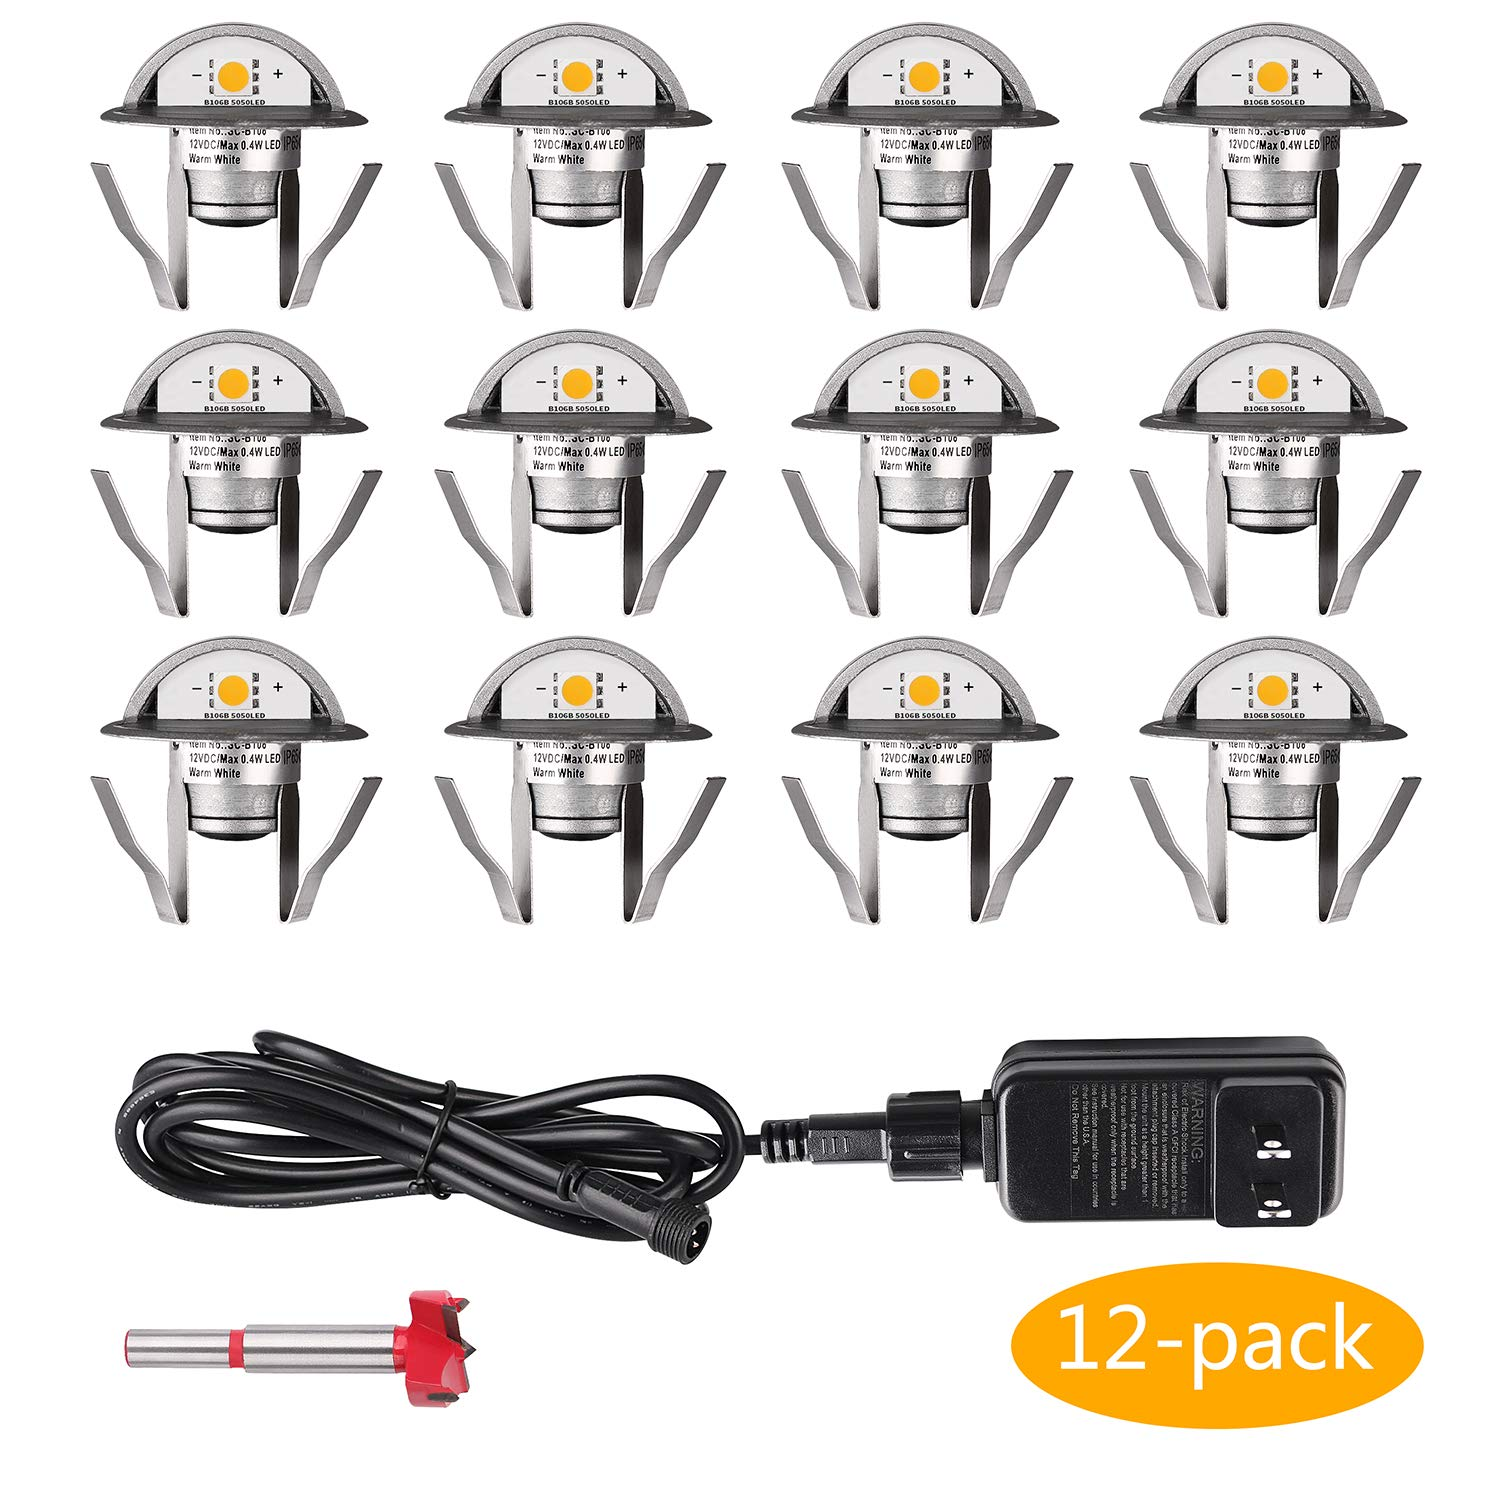 12 Pack Low Voltage LED Deck Lights Kit Φ1.38'' IP67 Waterproof Stairs Light for Landscape,Pathway,Step,Basement